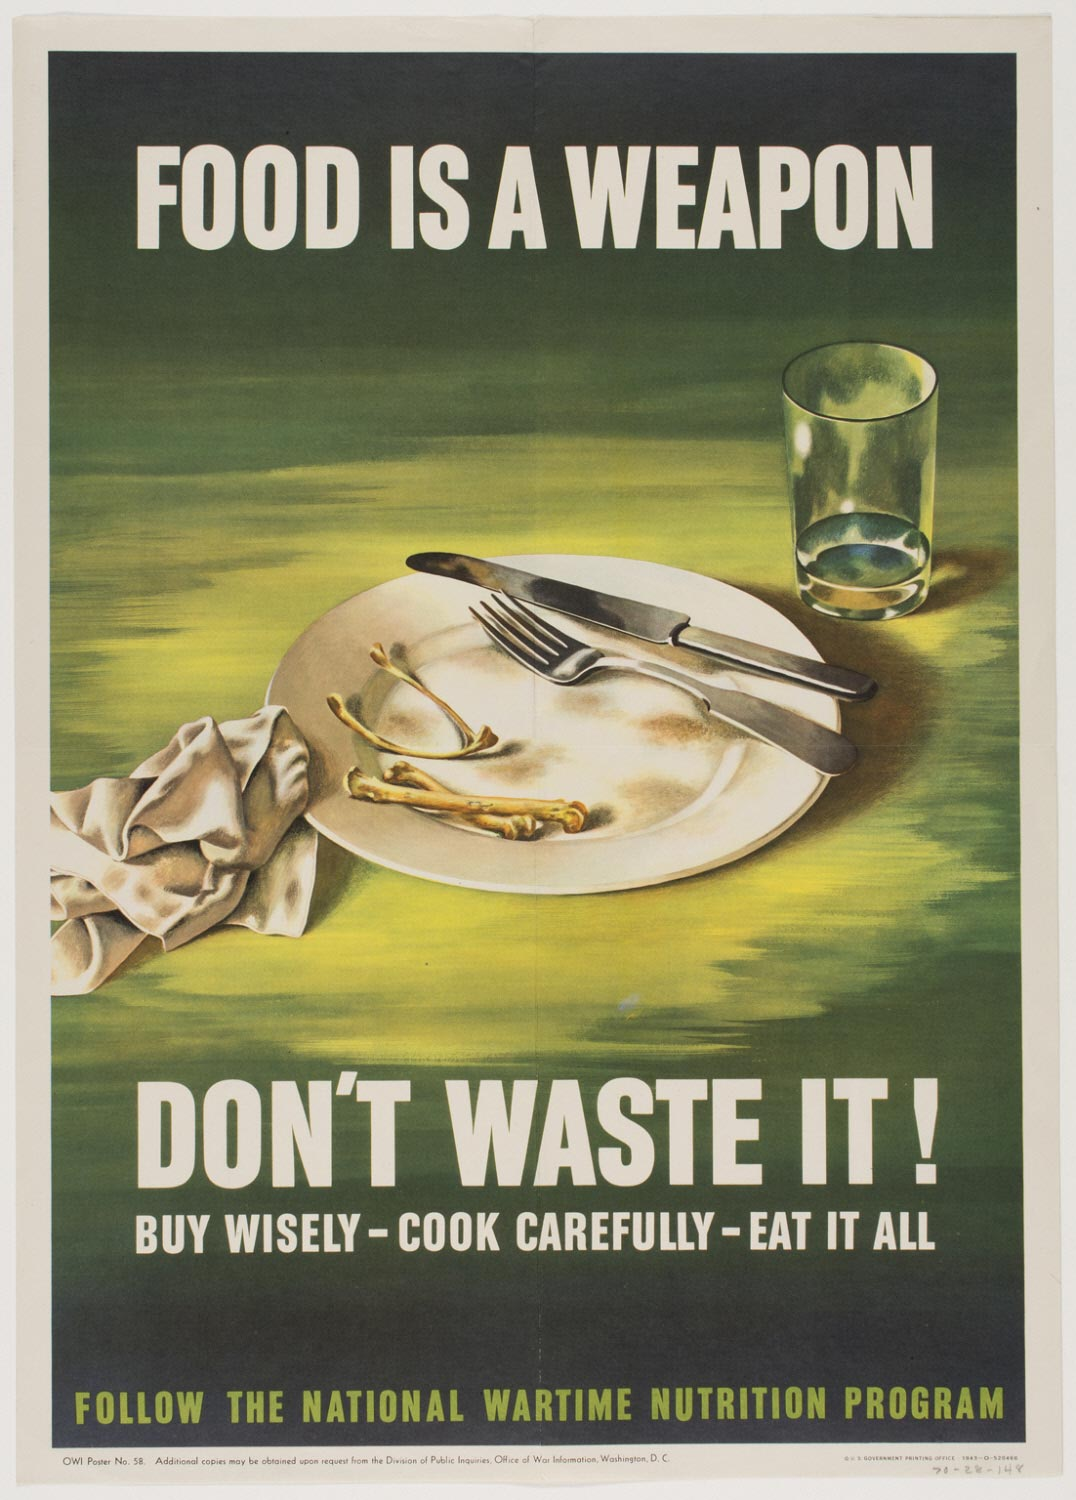 Food is a Weapon - Don't Waste It!  Buy Wisely - Cook Carefully - Eat it All